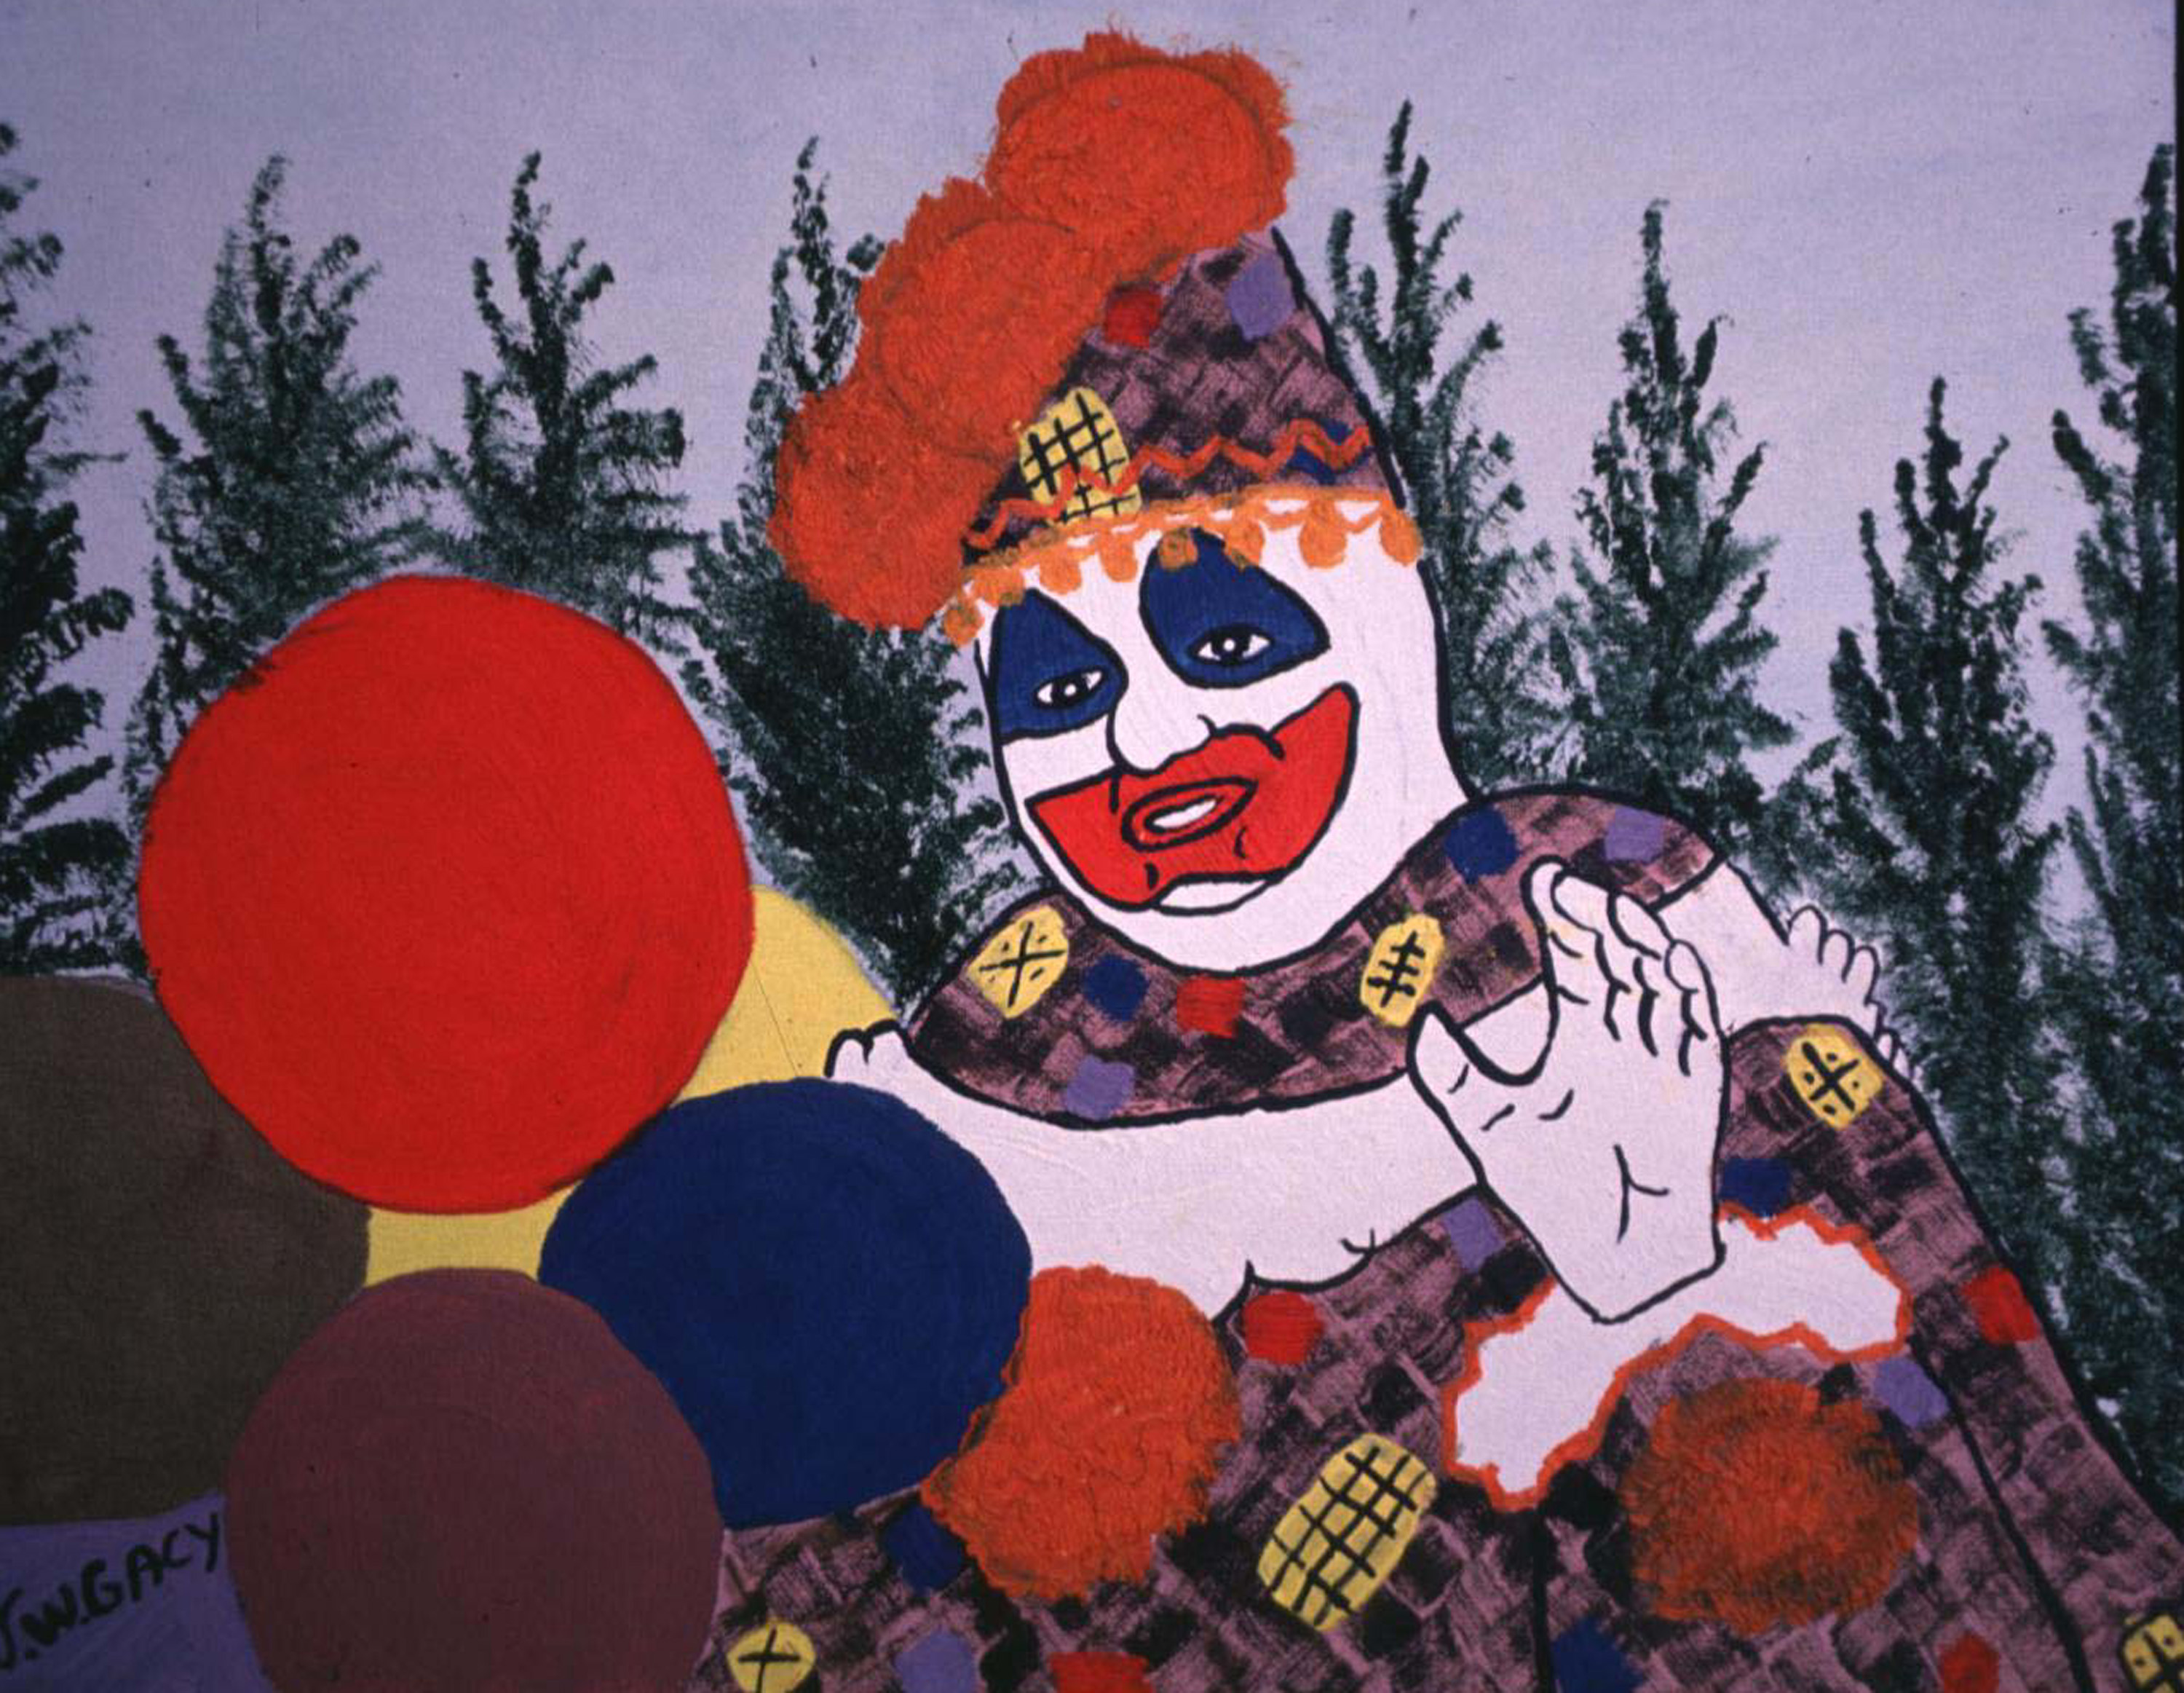 Victim of The Killer Clown Finally Identified After 40 Years